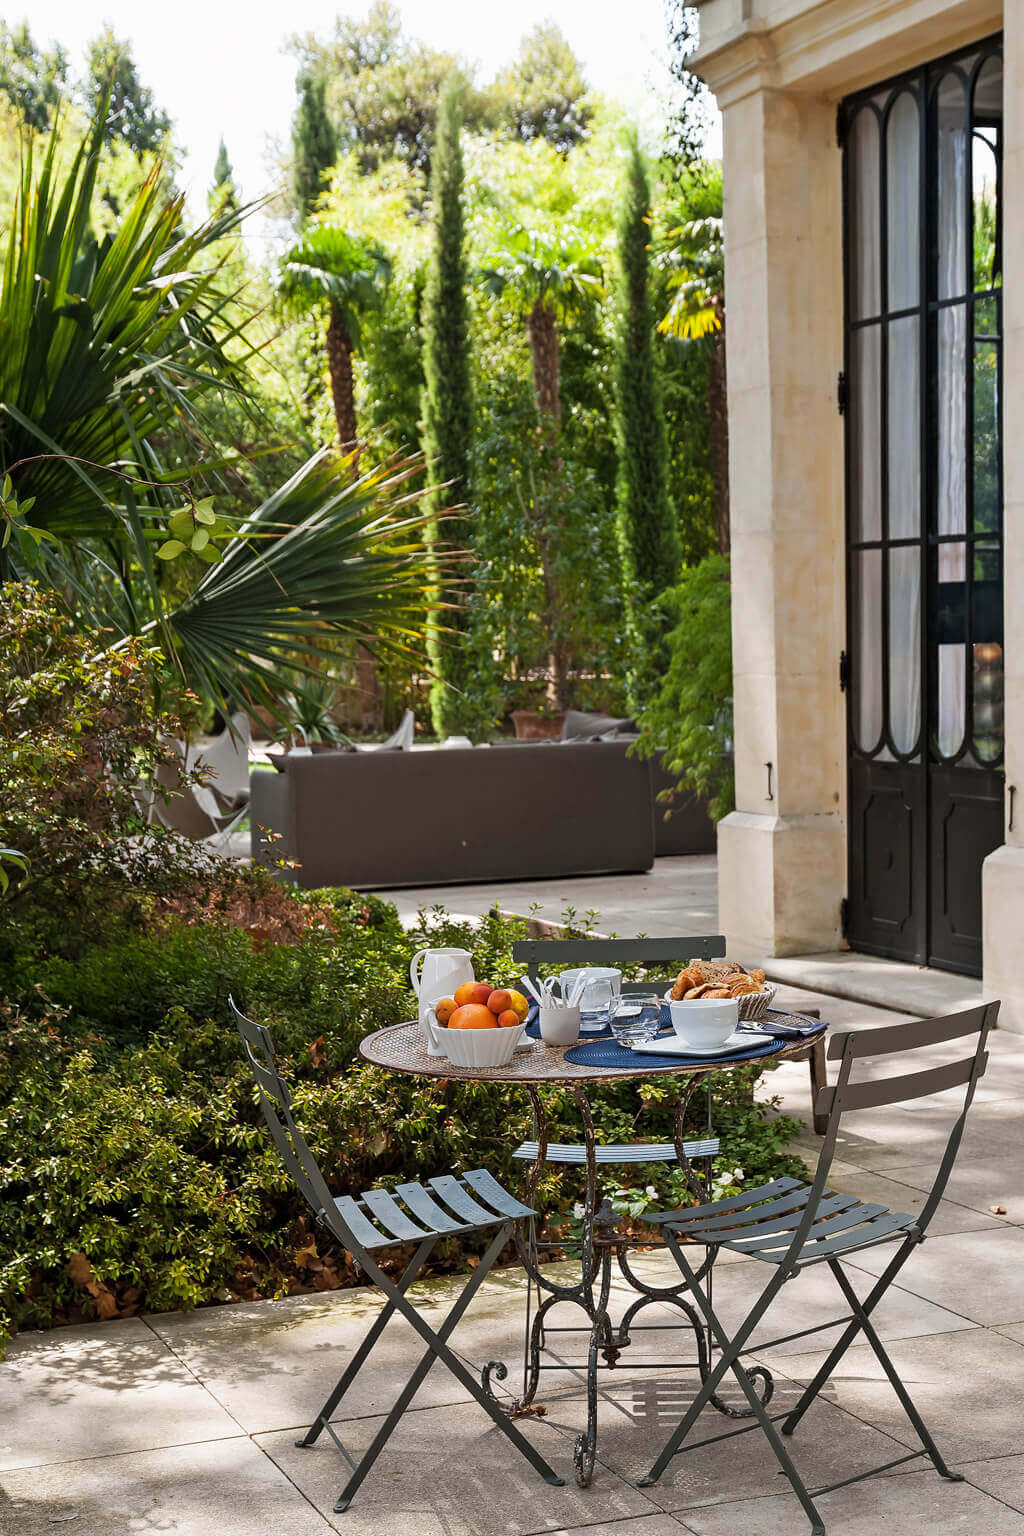 Bistro set in a peaceful Avignon garden. Come see a Breathtaking French Château Tour in Provence With Photo Gallery of Historical Architecture, Dramatic Eclectic Interiors & Oddities!